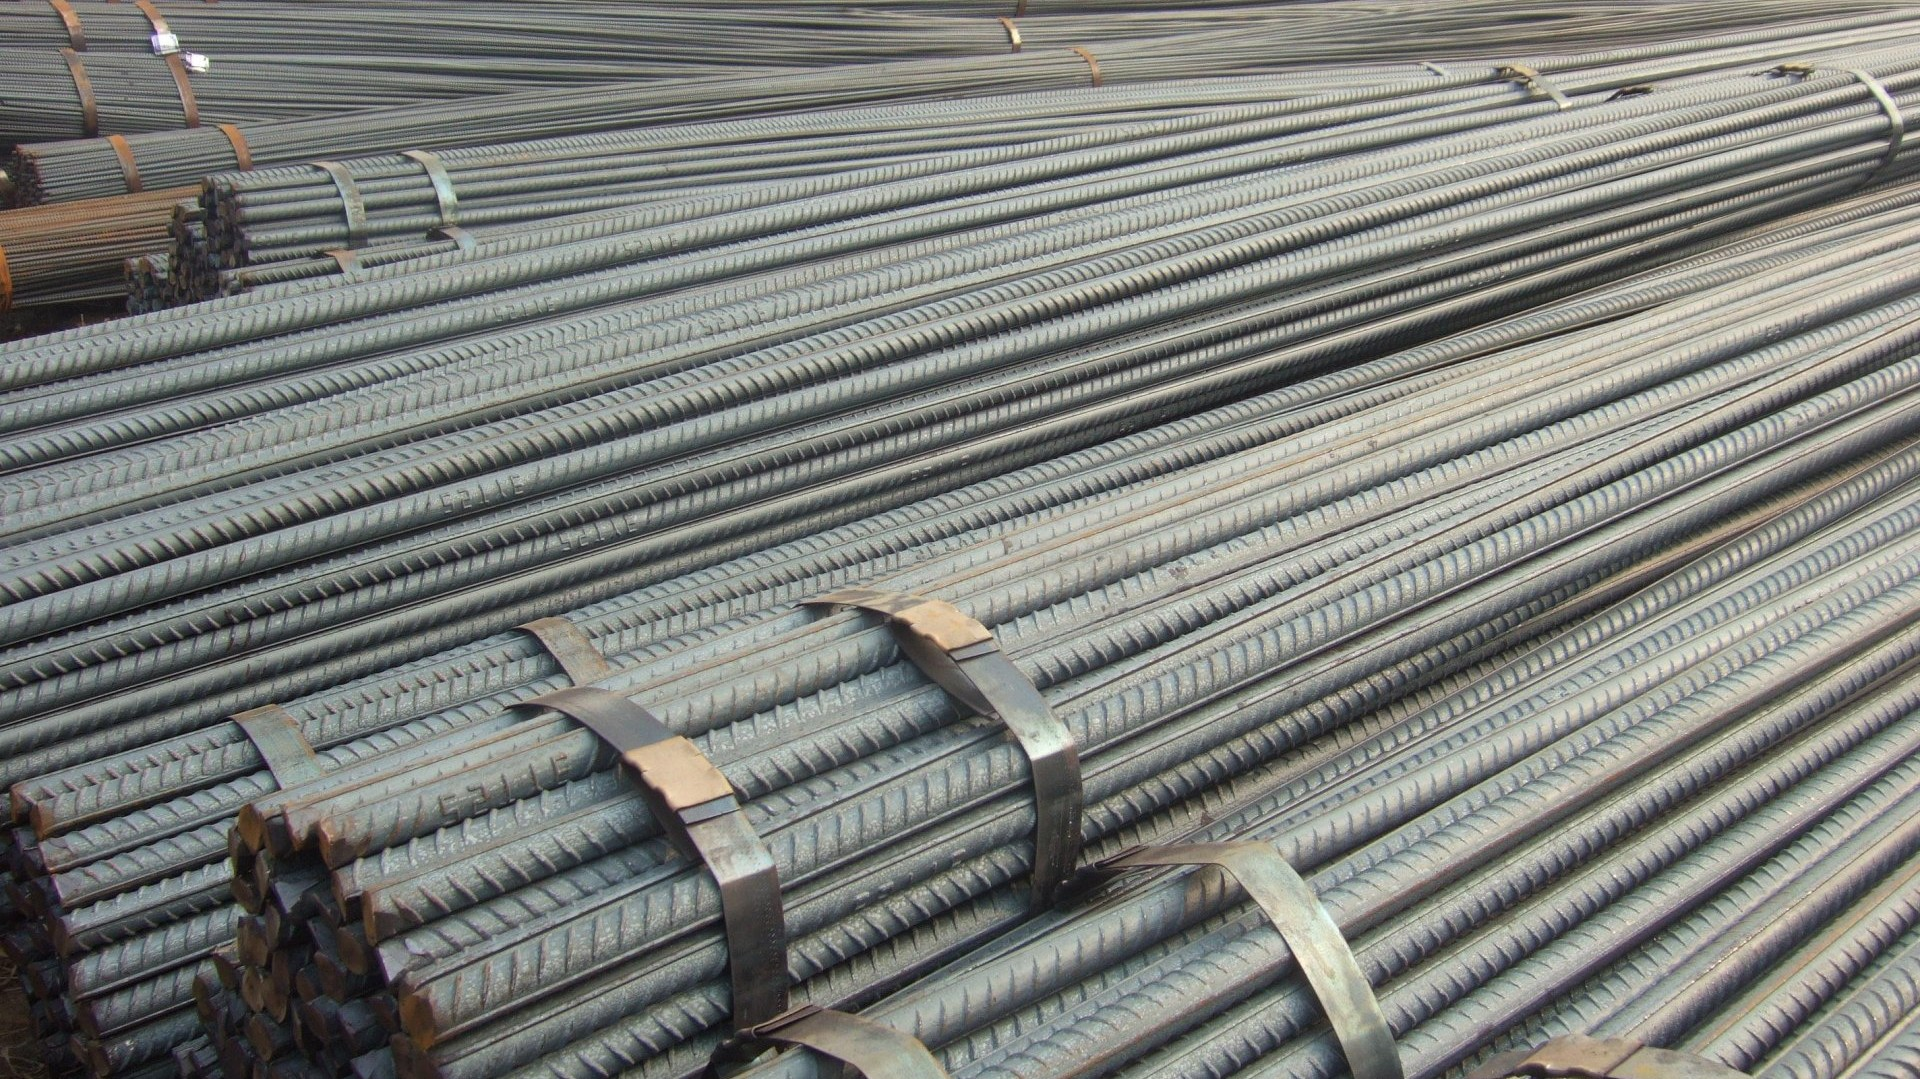 files/big-factory-structural-steel-construction-iron-bar-prices.2-f.jpg